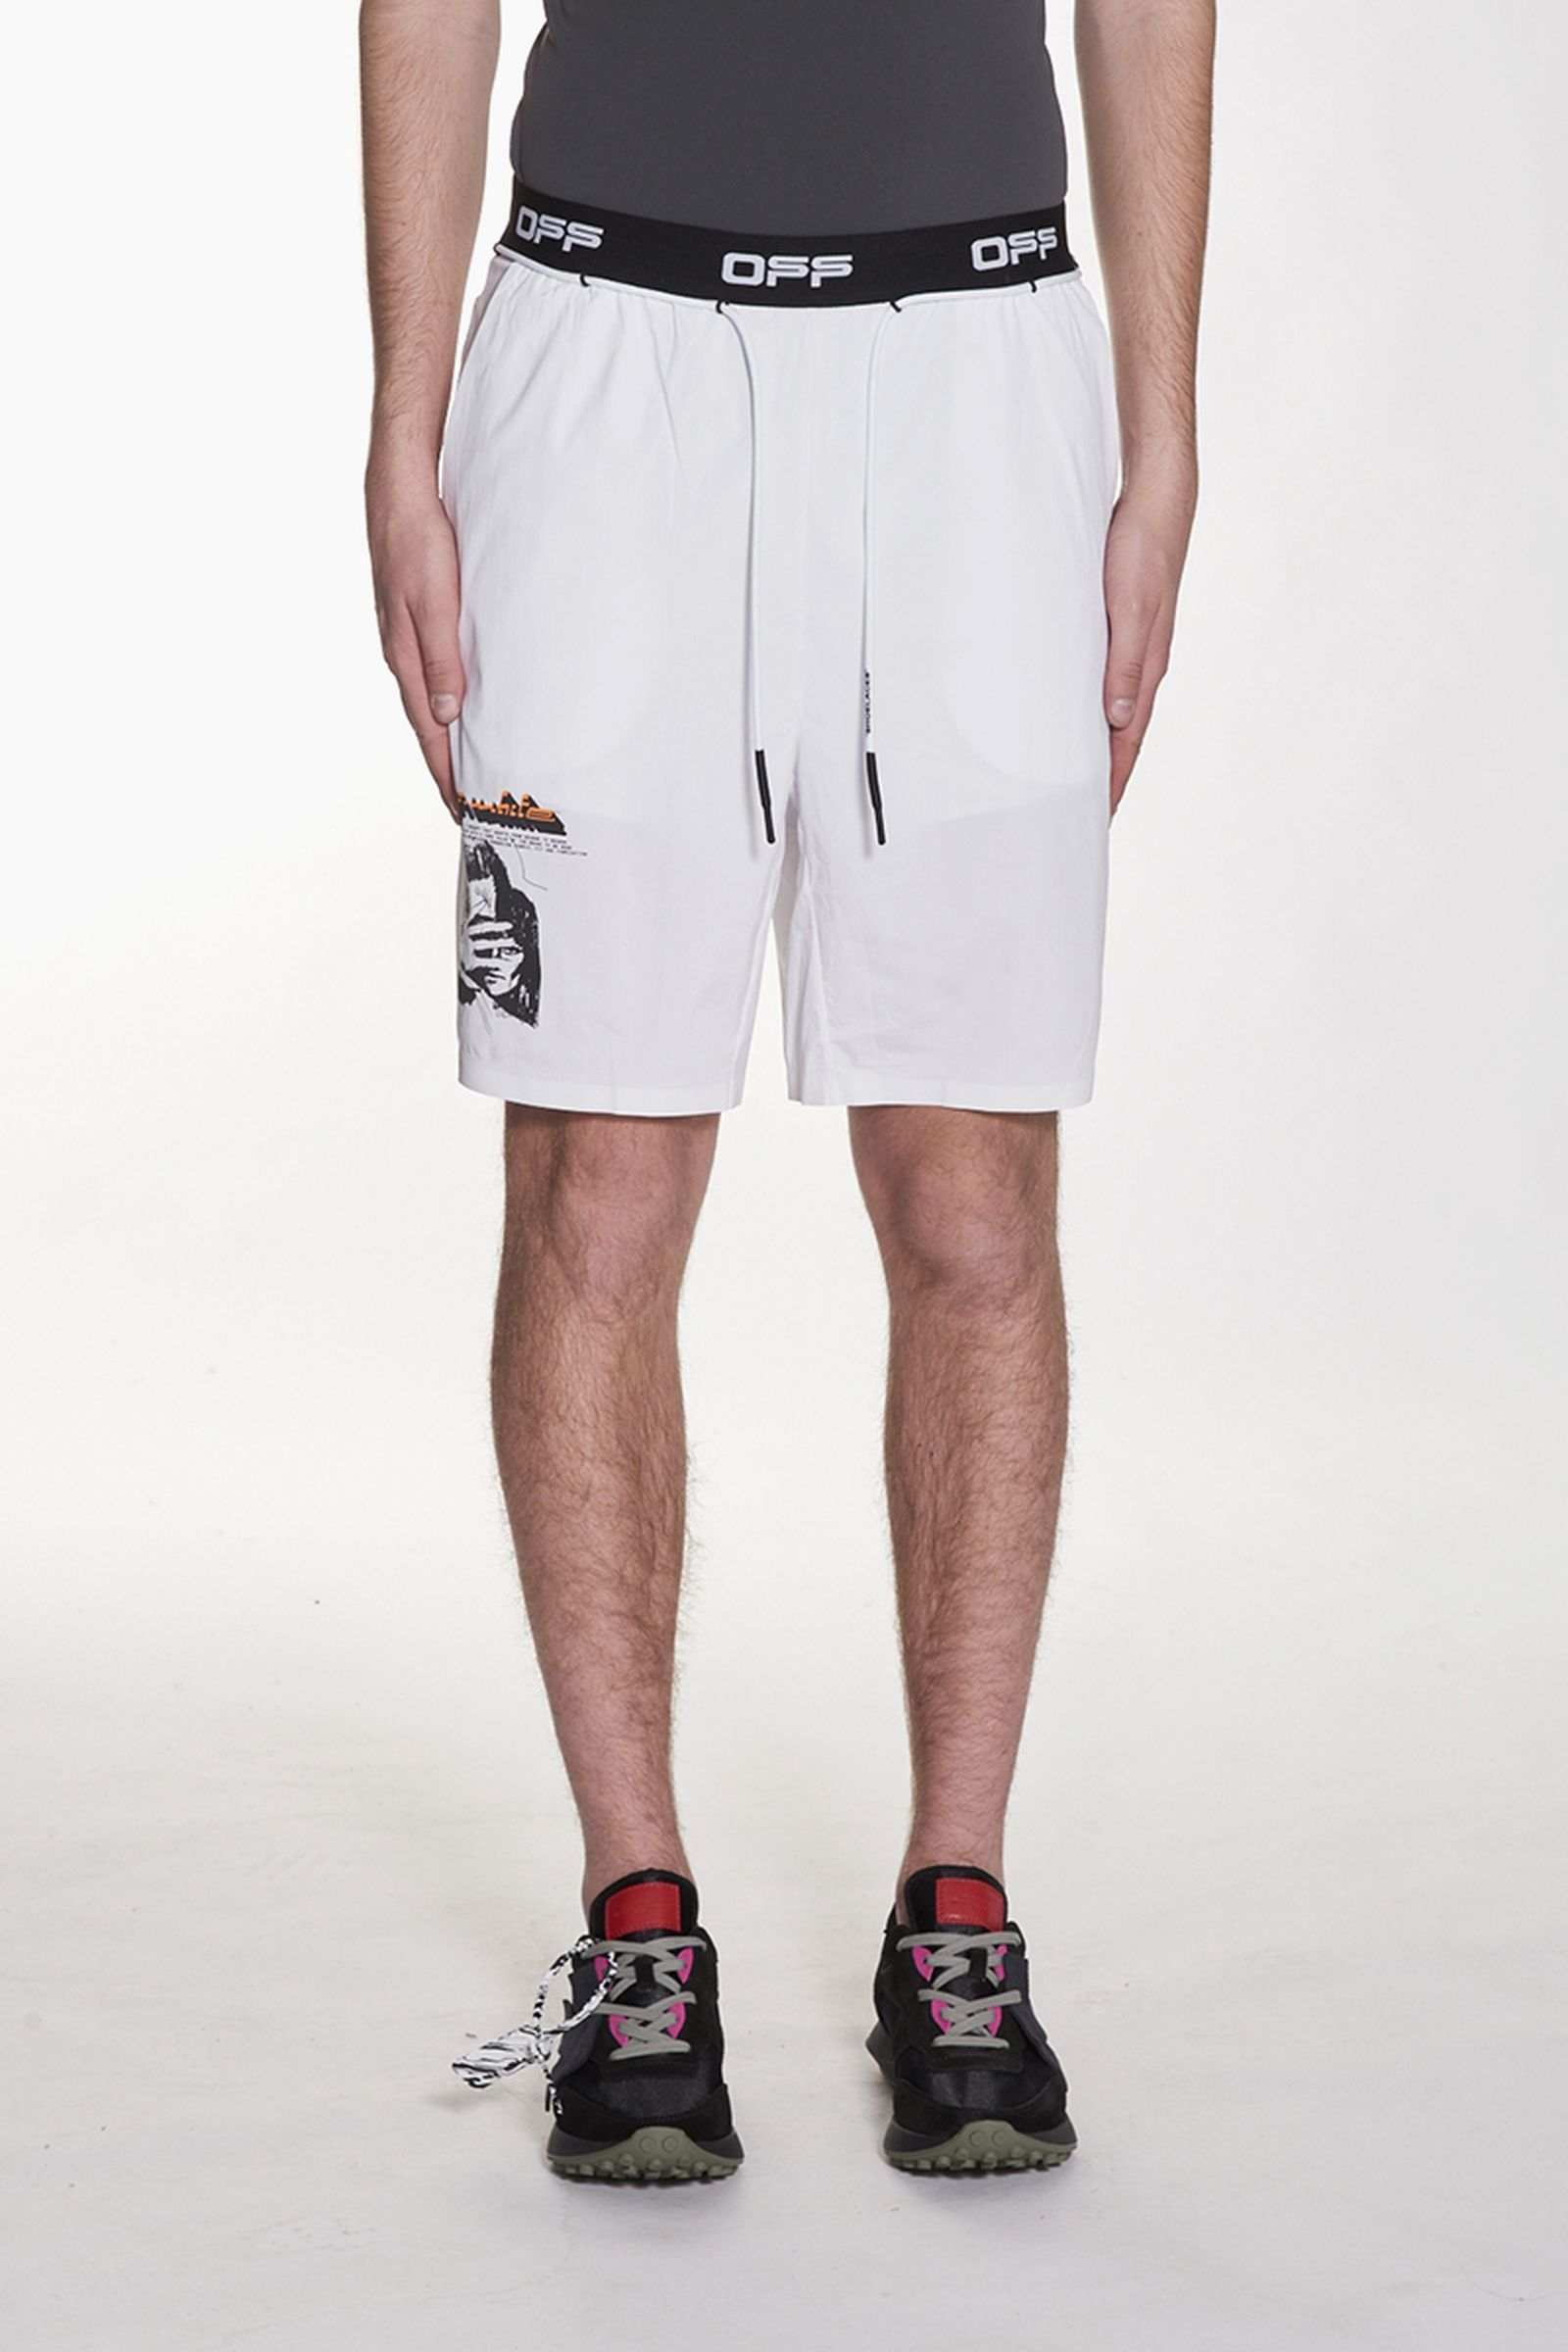 5off-white-activewear-off-active